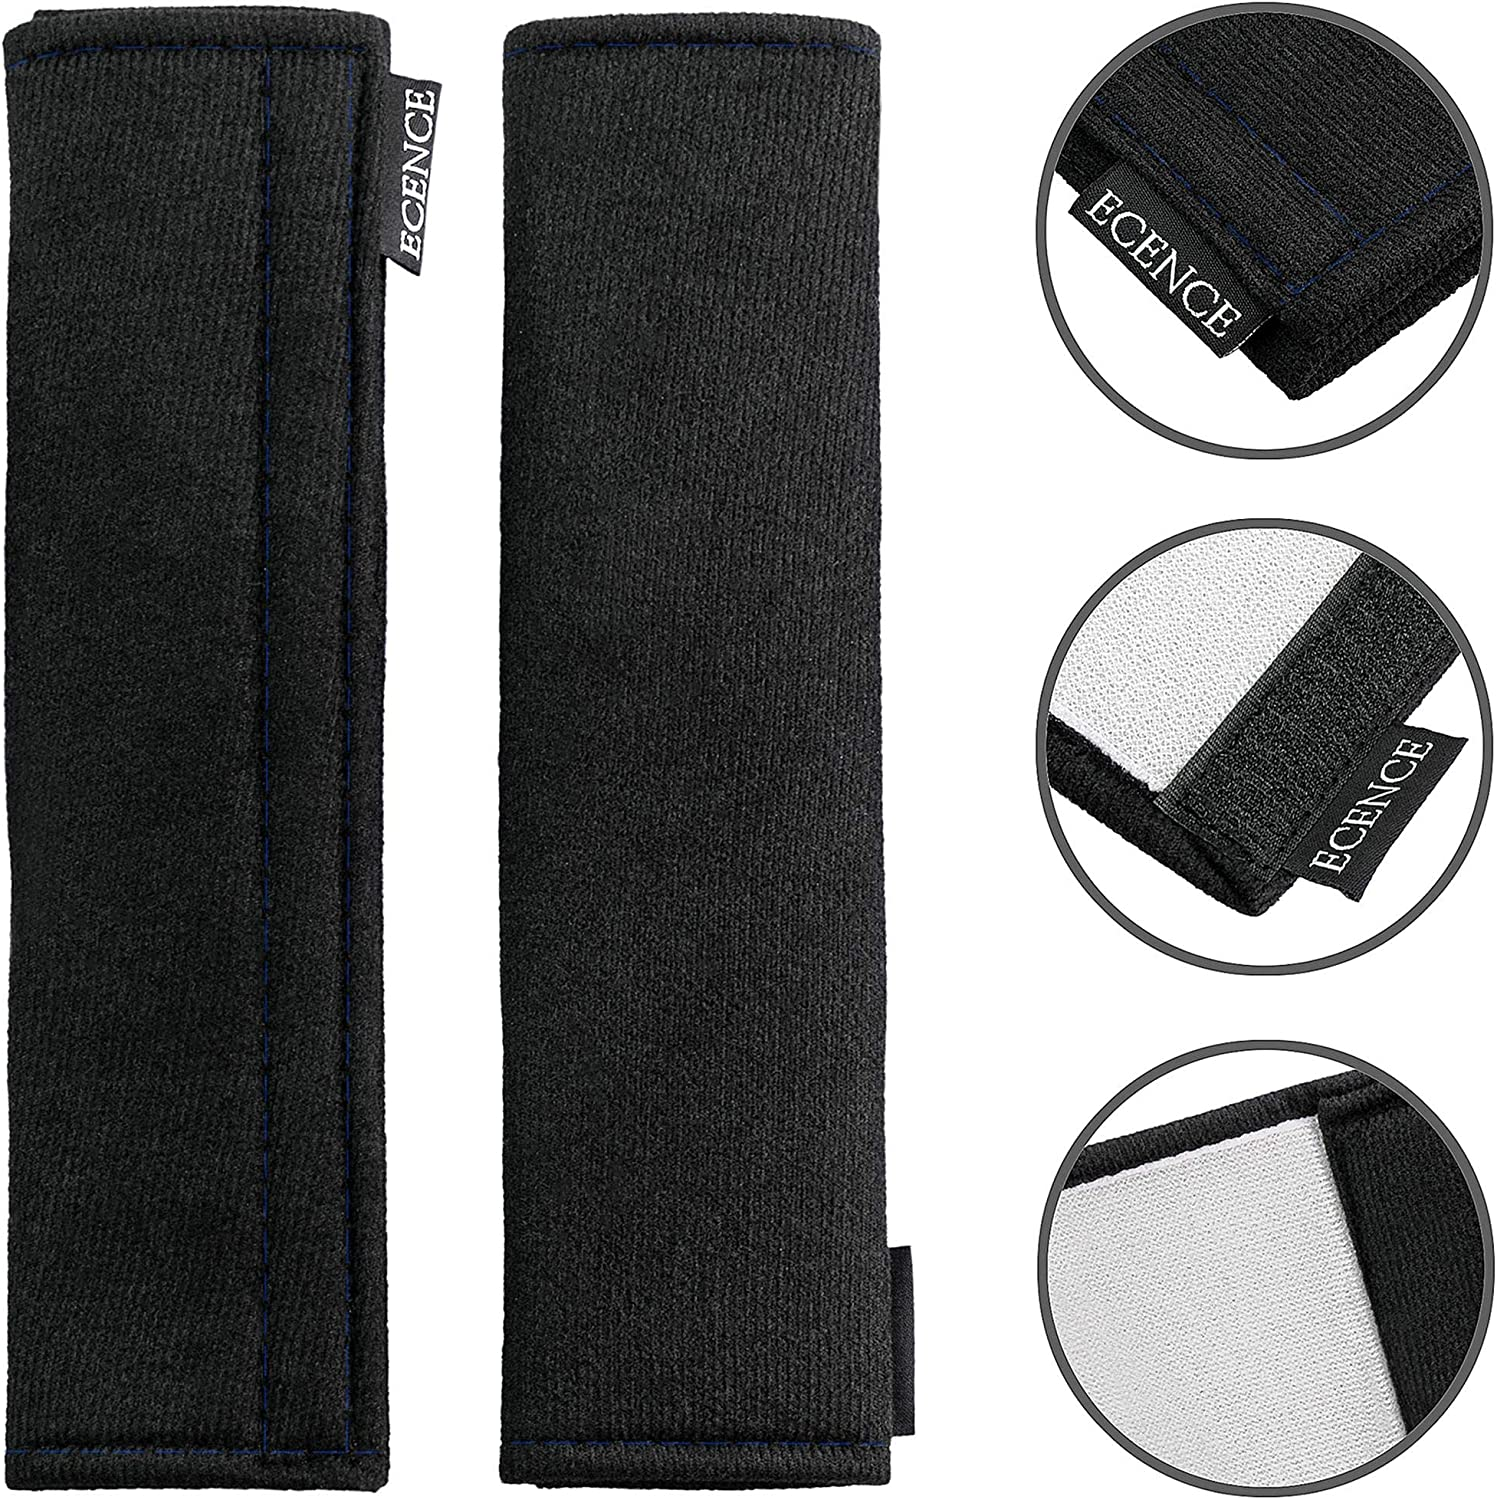 set of 2 seat belt pads for shoulder belts ECENCE Seat belt pads children multi-functional pads for car and truck seat belts Black with white seam adult automotive seat belt pads